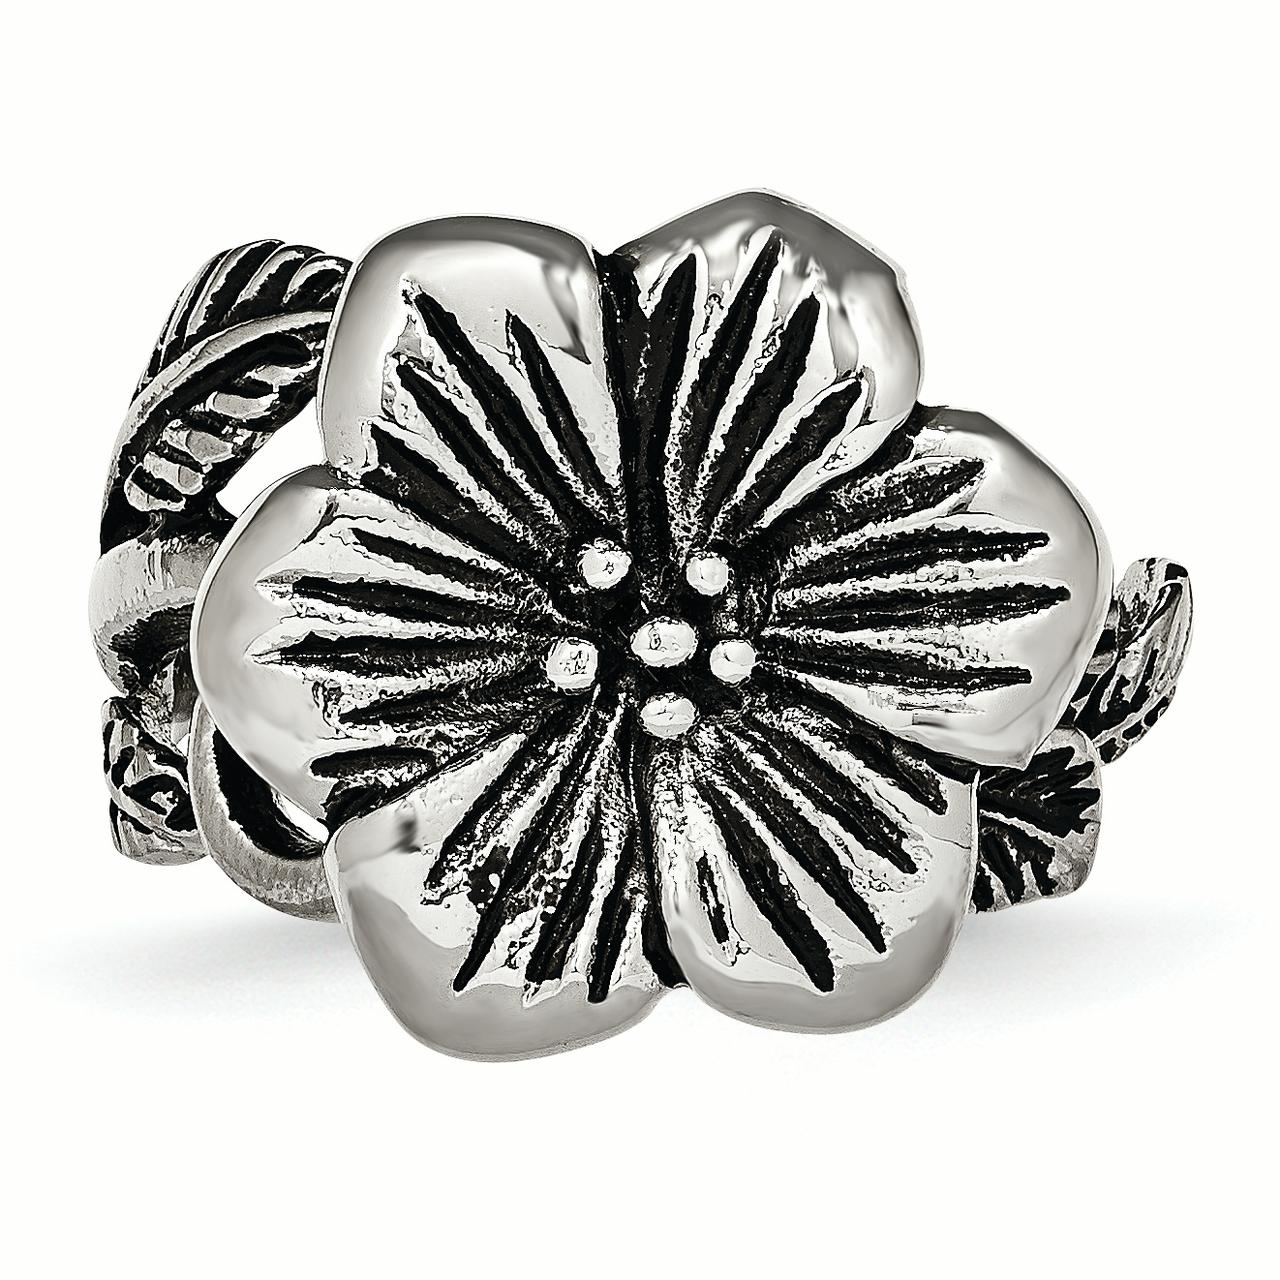 Stainless Steel Antique Finish Flower Band Ring Size 6.00 Flowers/leaf Fashion Jewelry Gifts For Women For Her - image 4 de 6